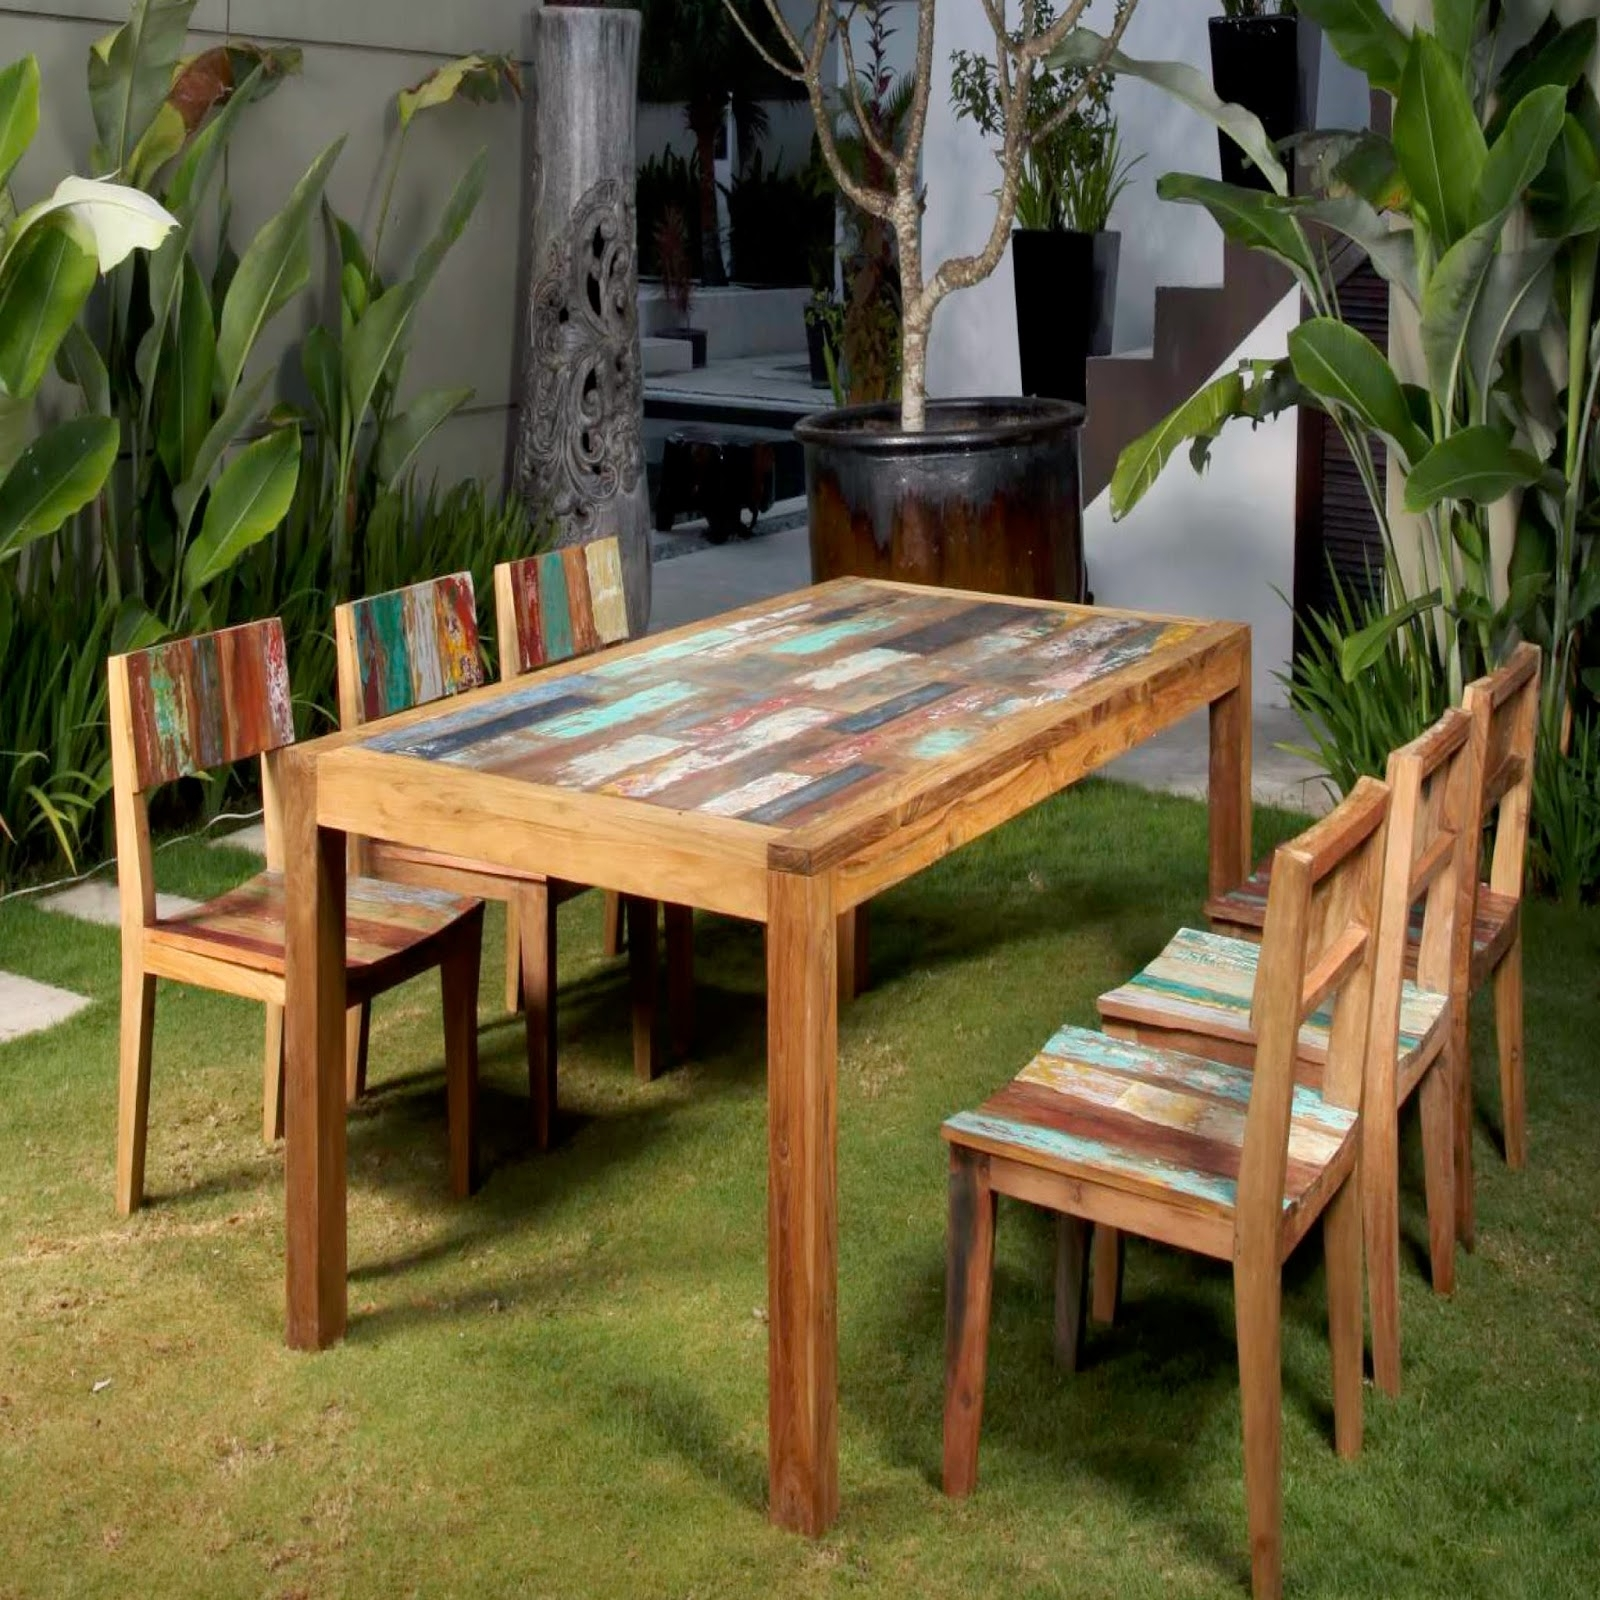 Preferred Online Furniture Store In Perth Intended For Bali Dining Sets (View 18 of 25)